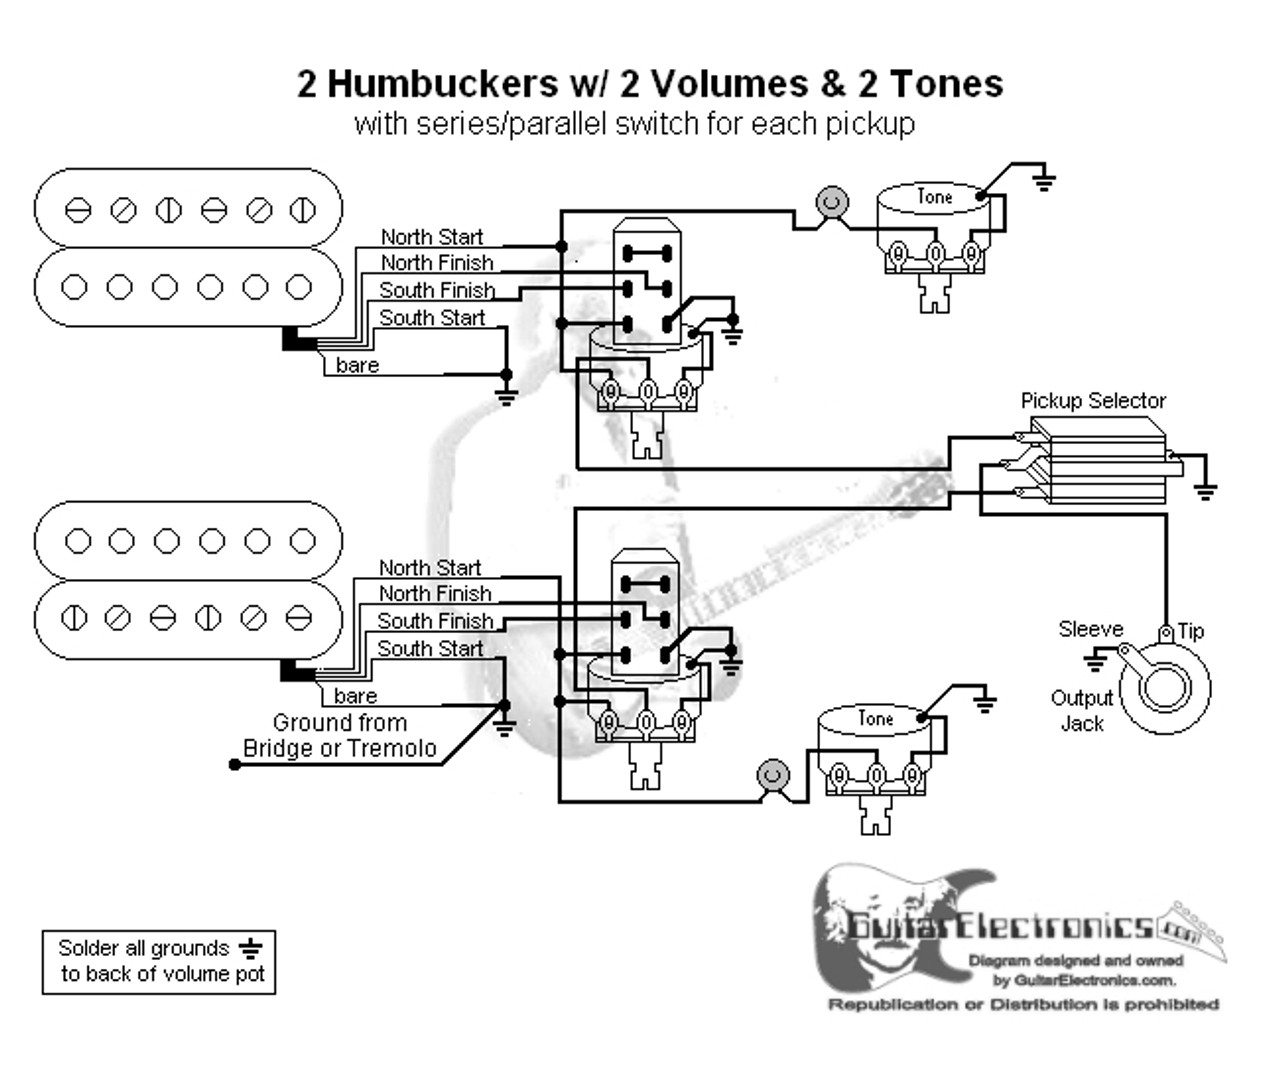 2 Humbuckers/3-Way Toggle Switch/2Volumes/2 Tones/Series Parallel